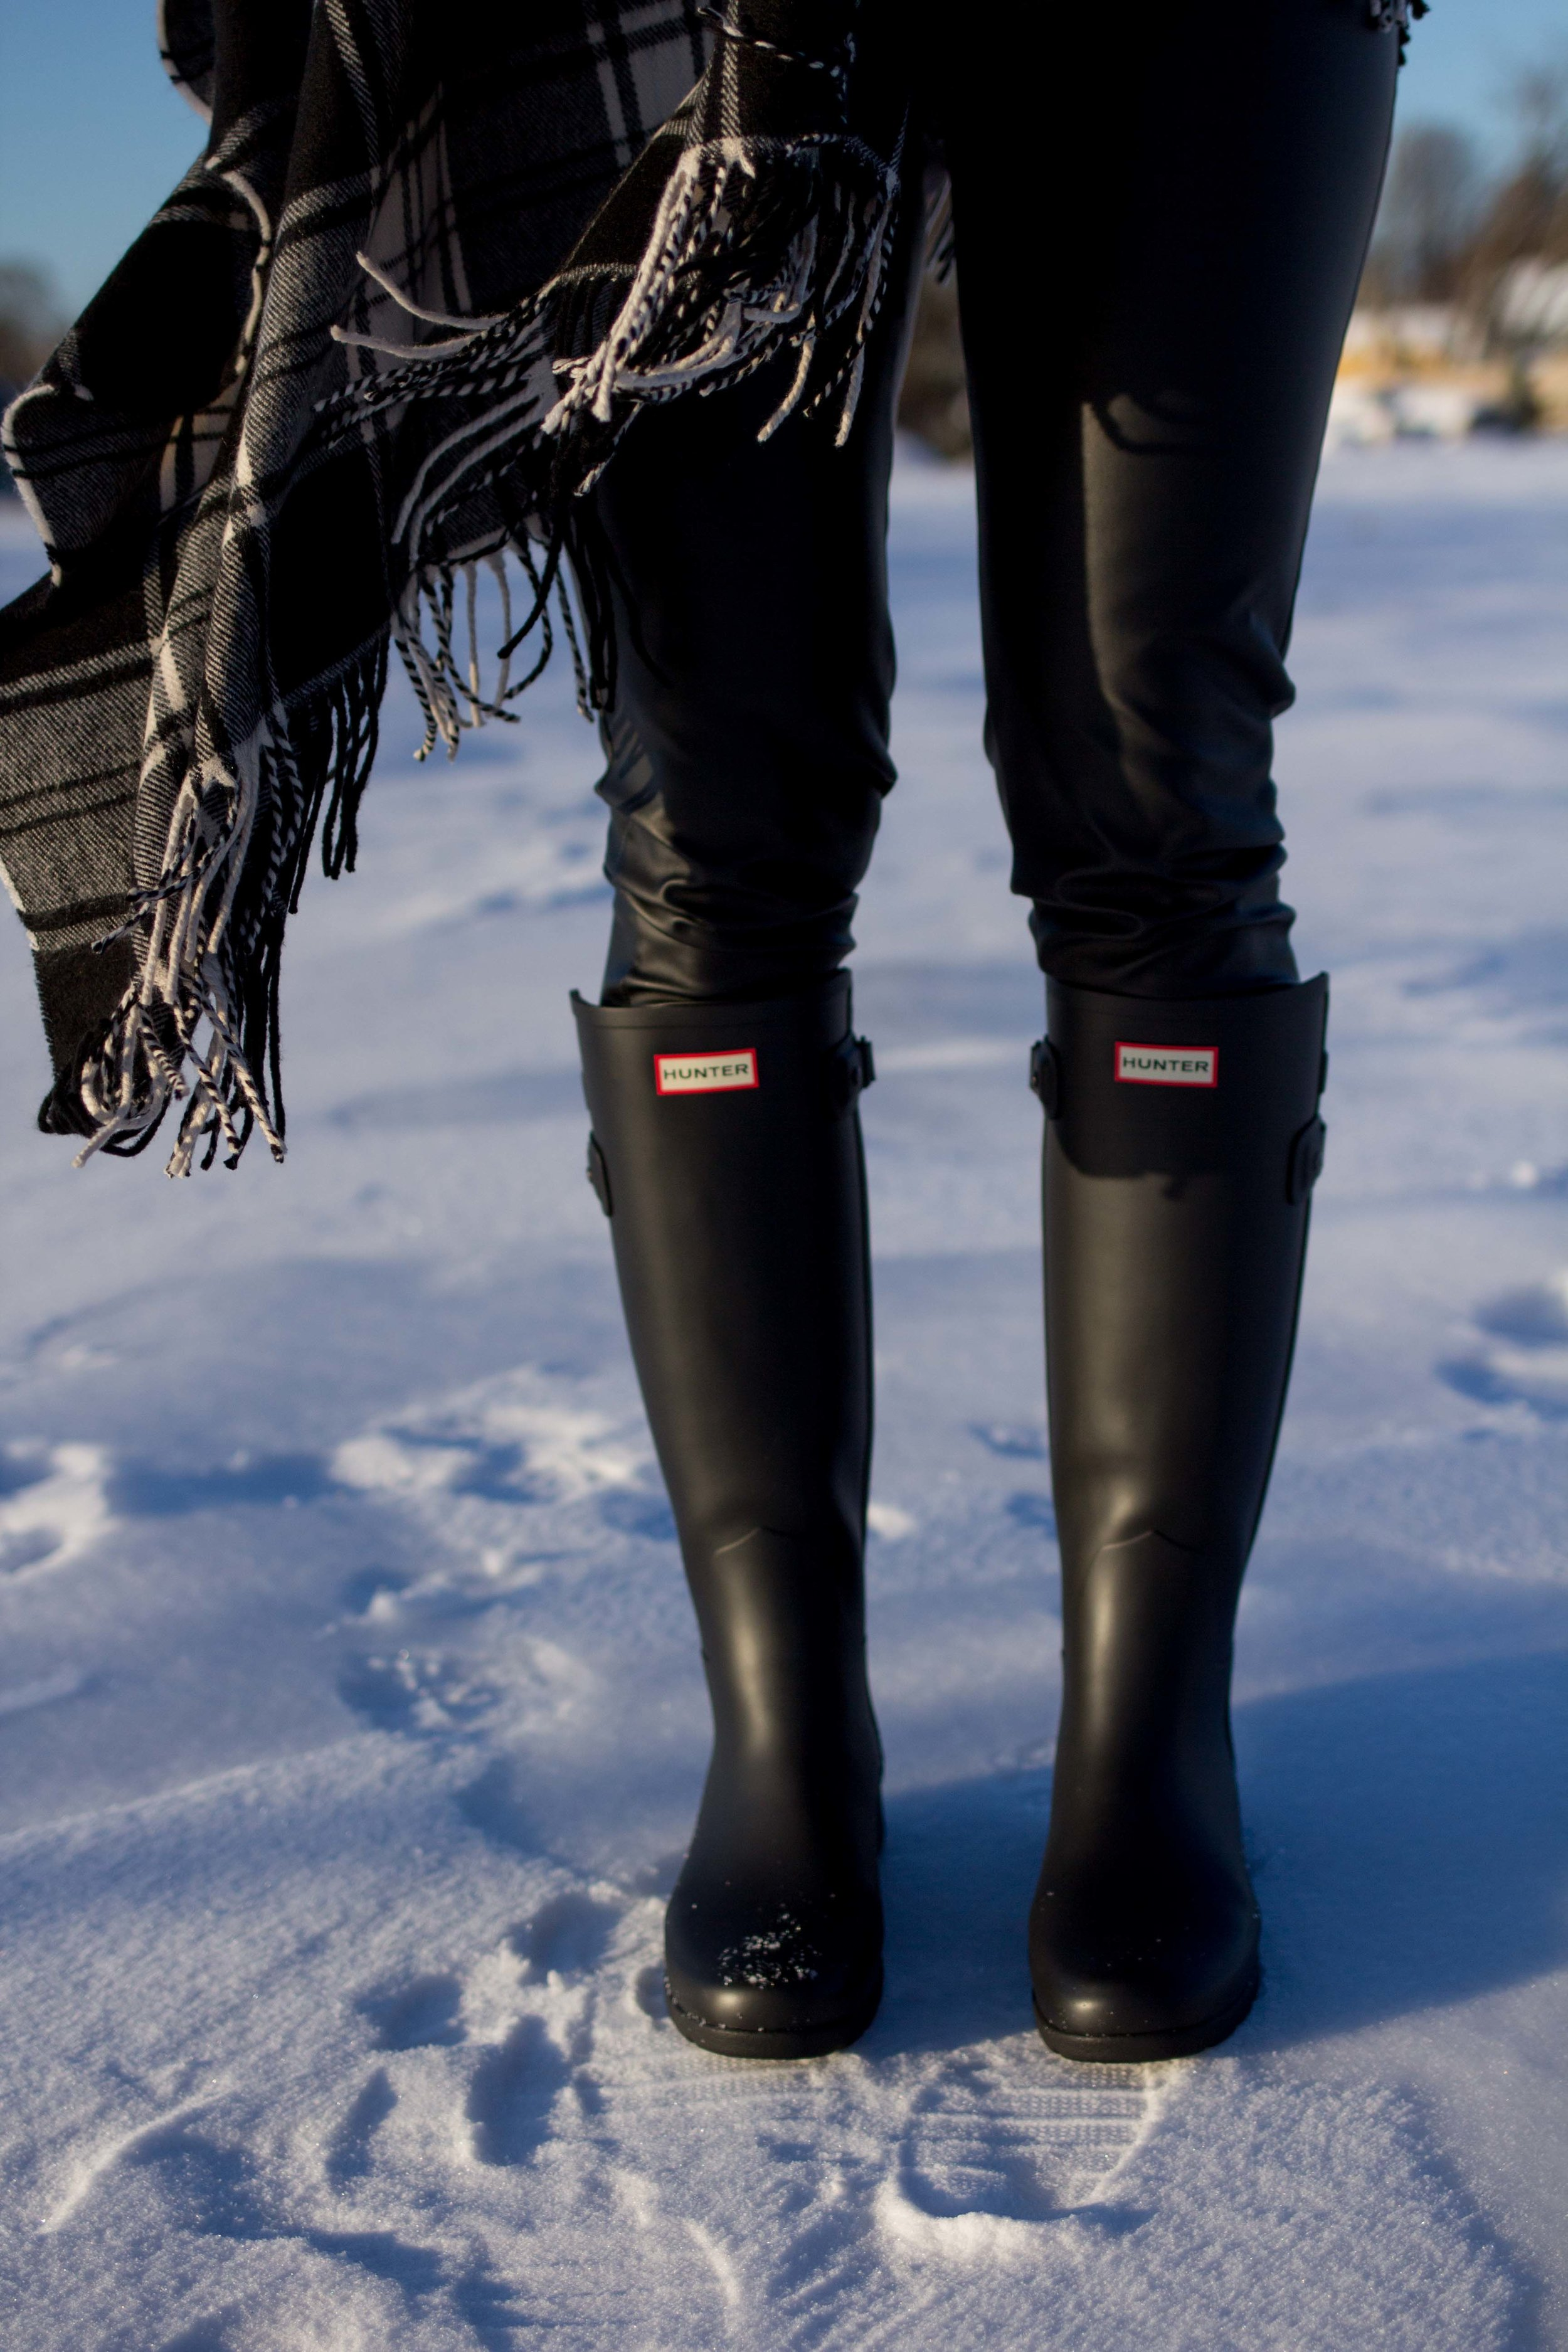 Casual Friday Outfits - Casual Outfits - Casual Weekend Outfits - Hunter Boots Outfit - Leather Legging Outfits - Blanket Scarf Outfits - Winter Outfit Ideas- Fashion for Women -  heartandseam.com  #heartandseam